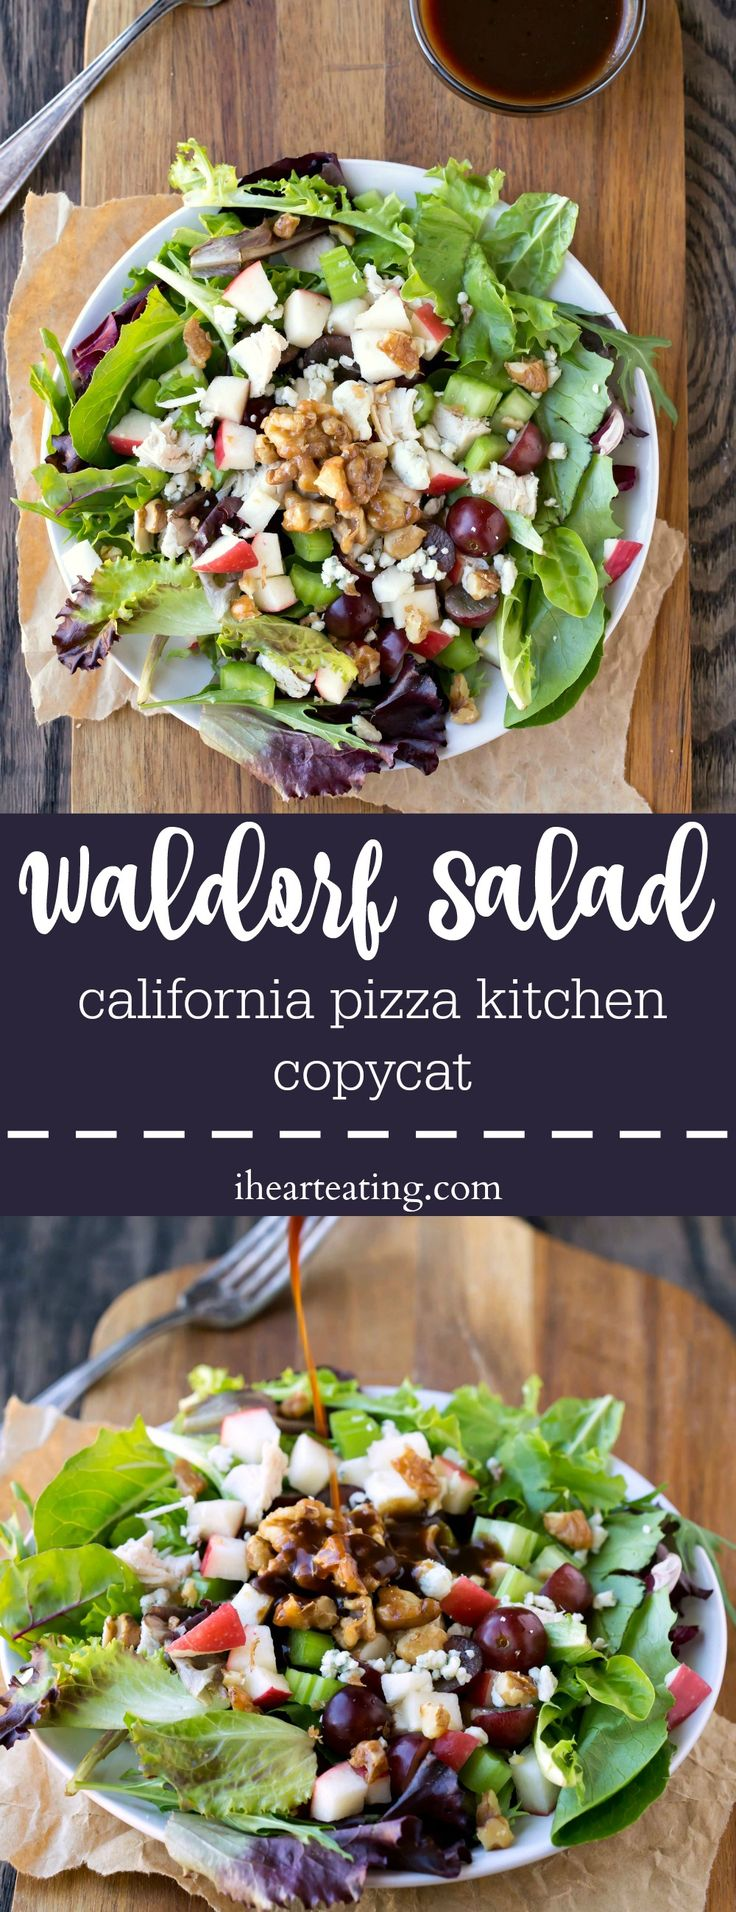 Waldorf Salad California Pizza Kitchen Copycat Recipe- might be good with honey in the dressing instead of sugar!